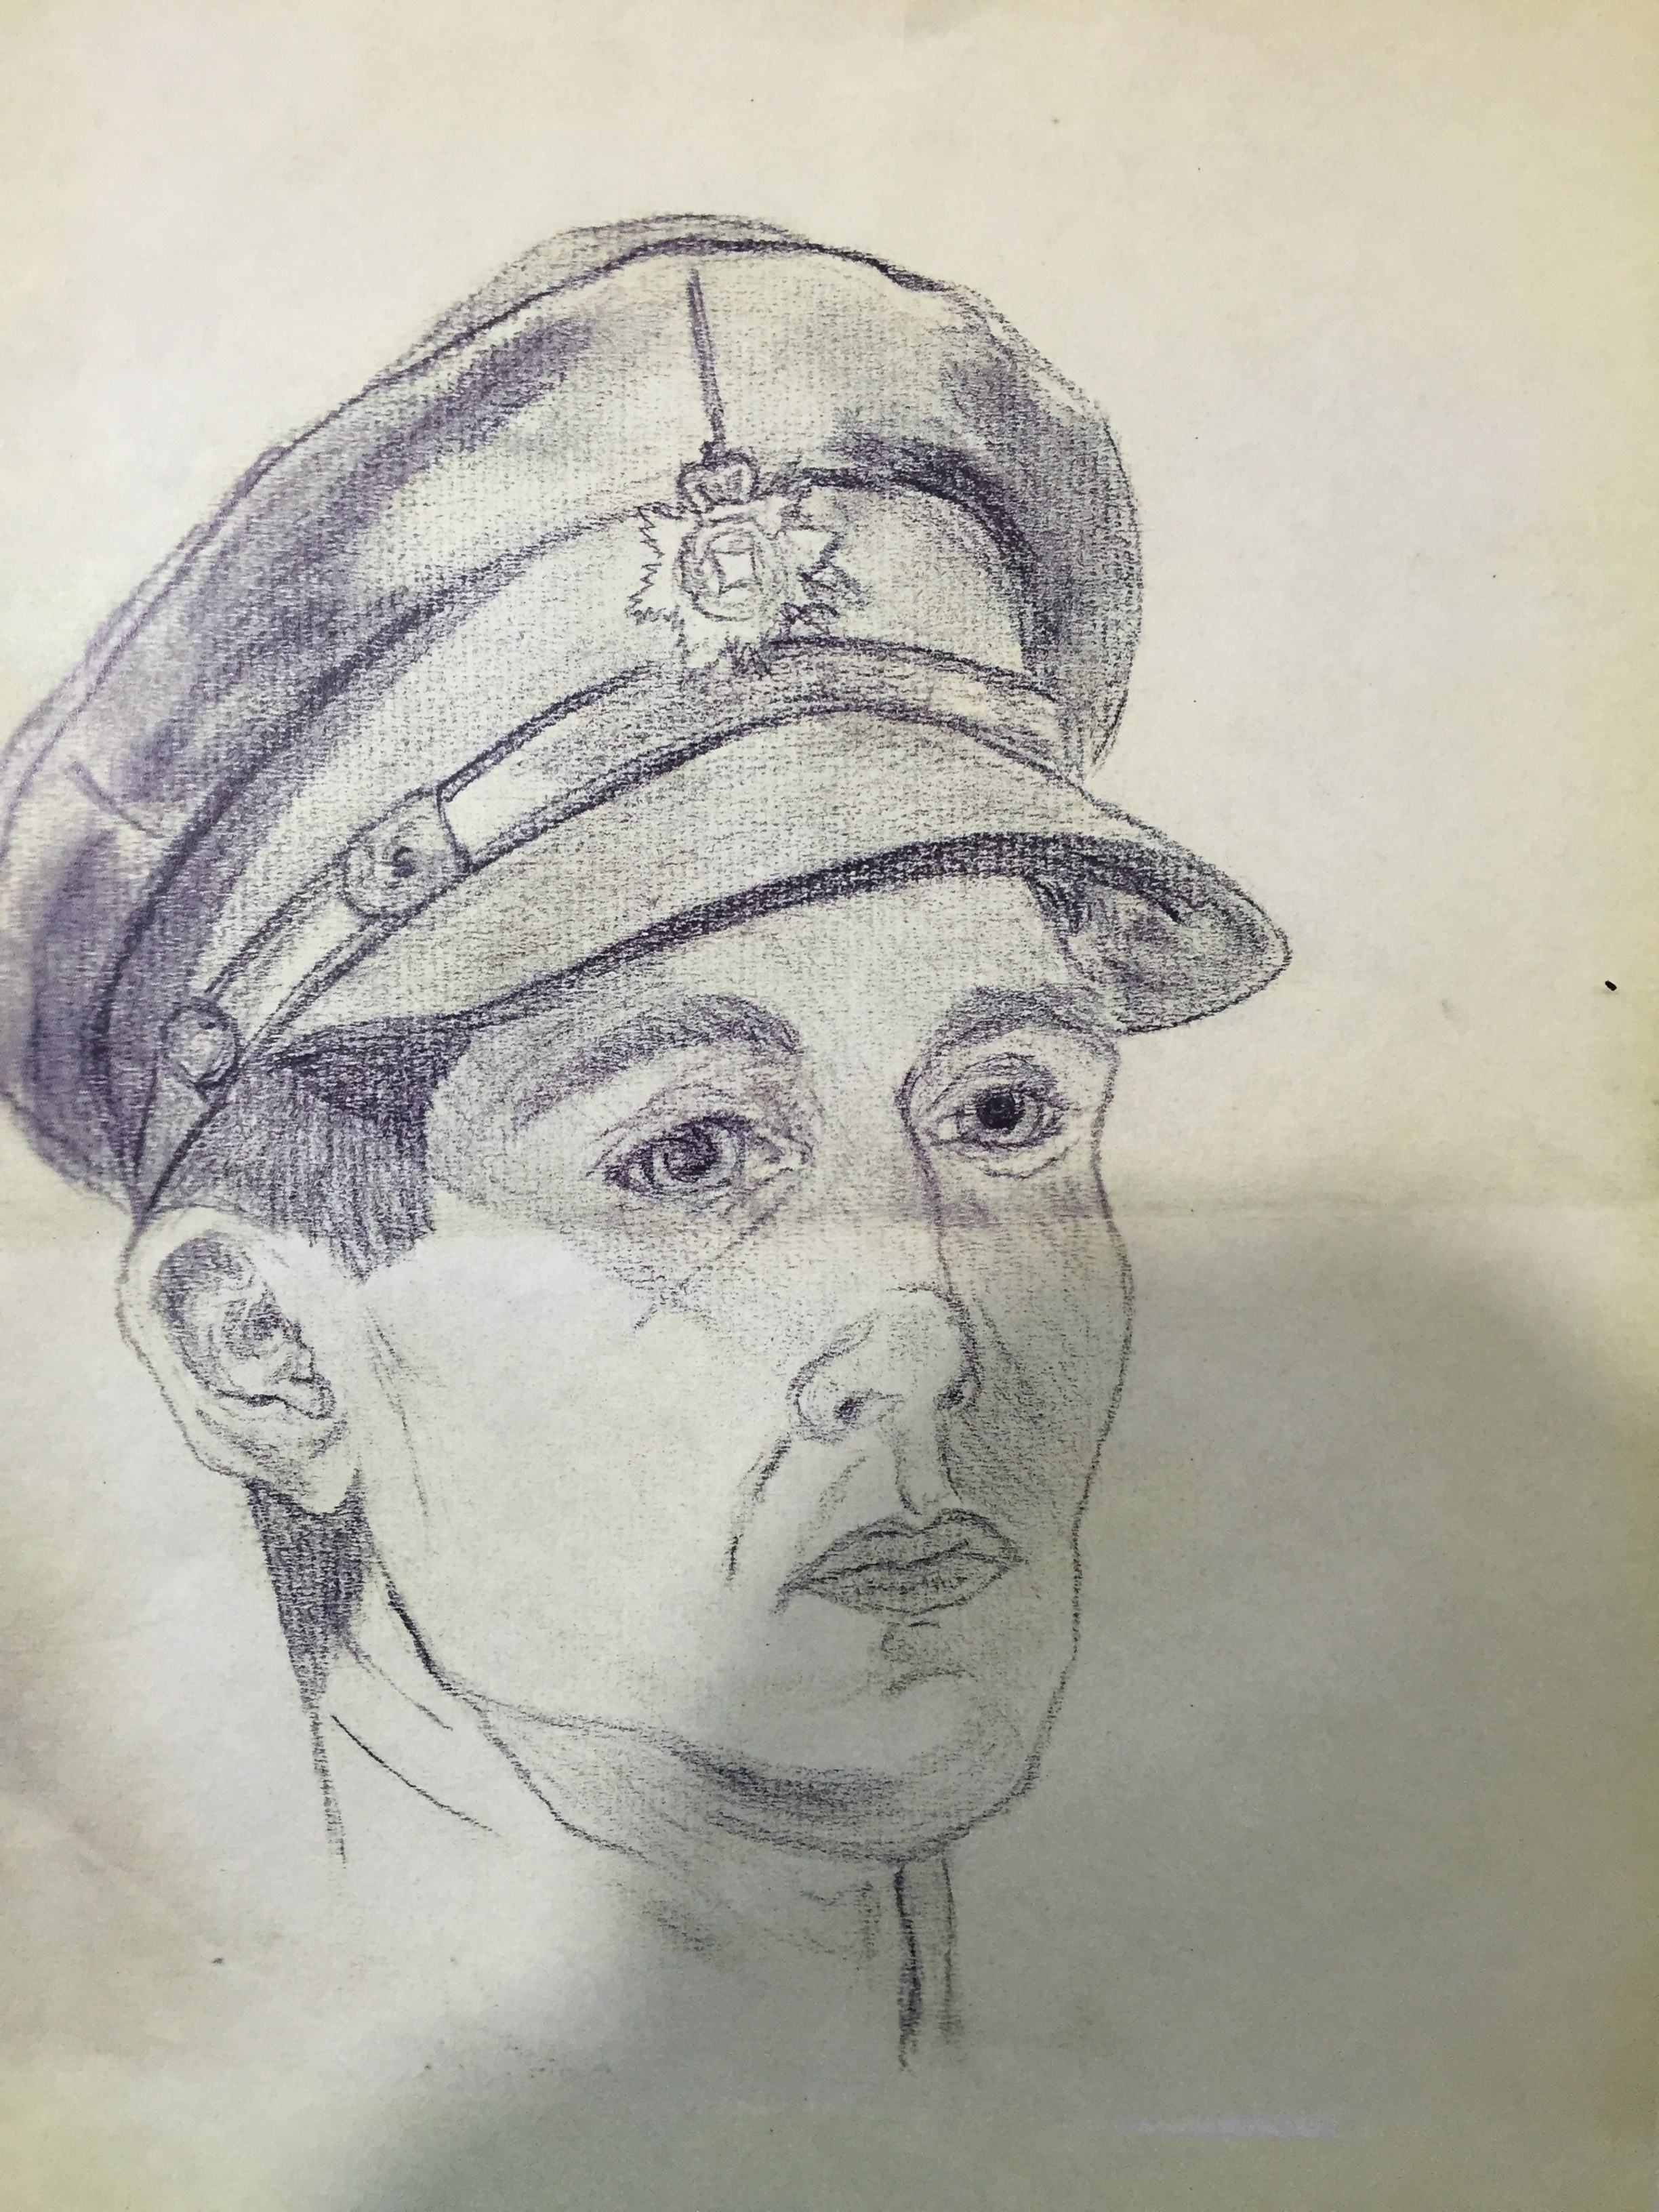 original sketch from another artist to compare final portrait